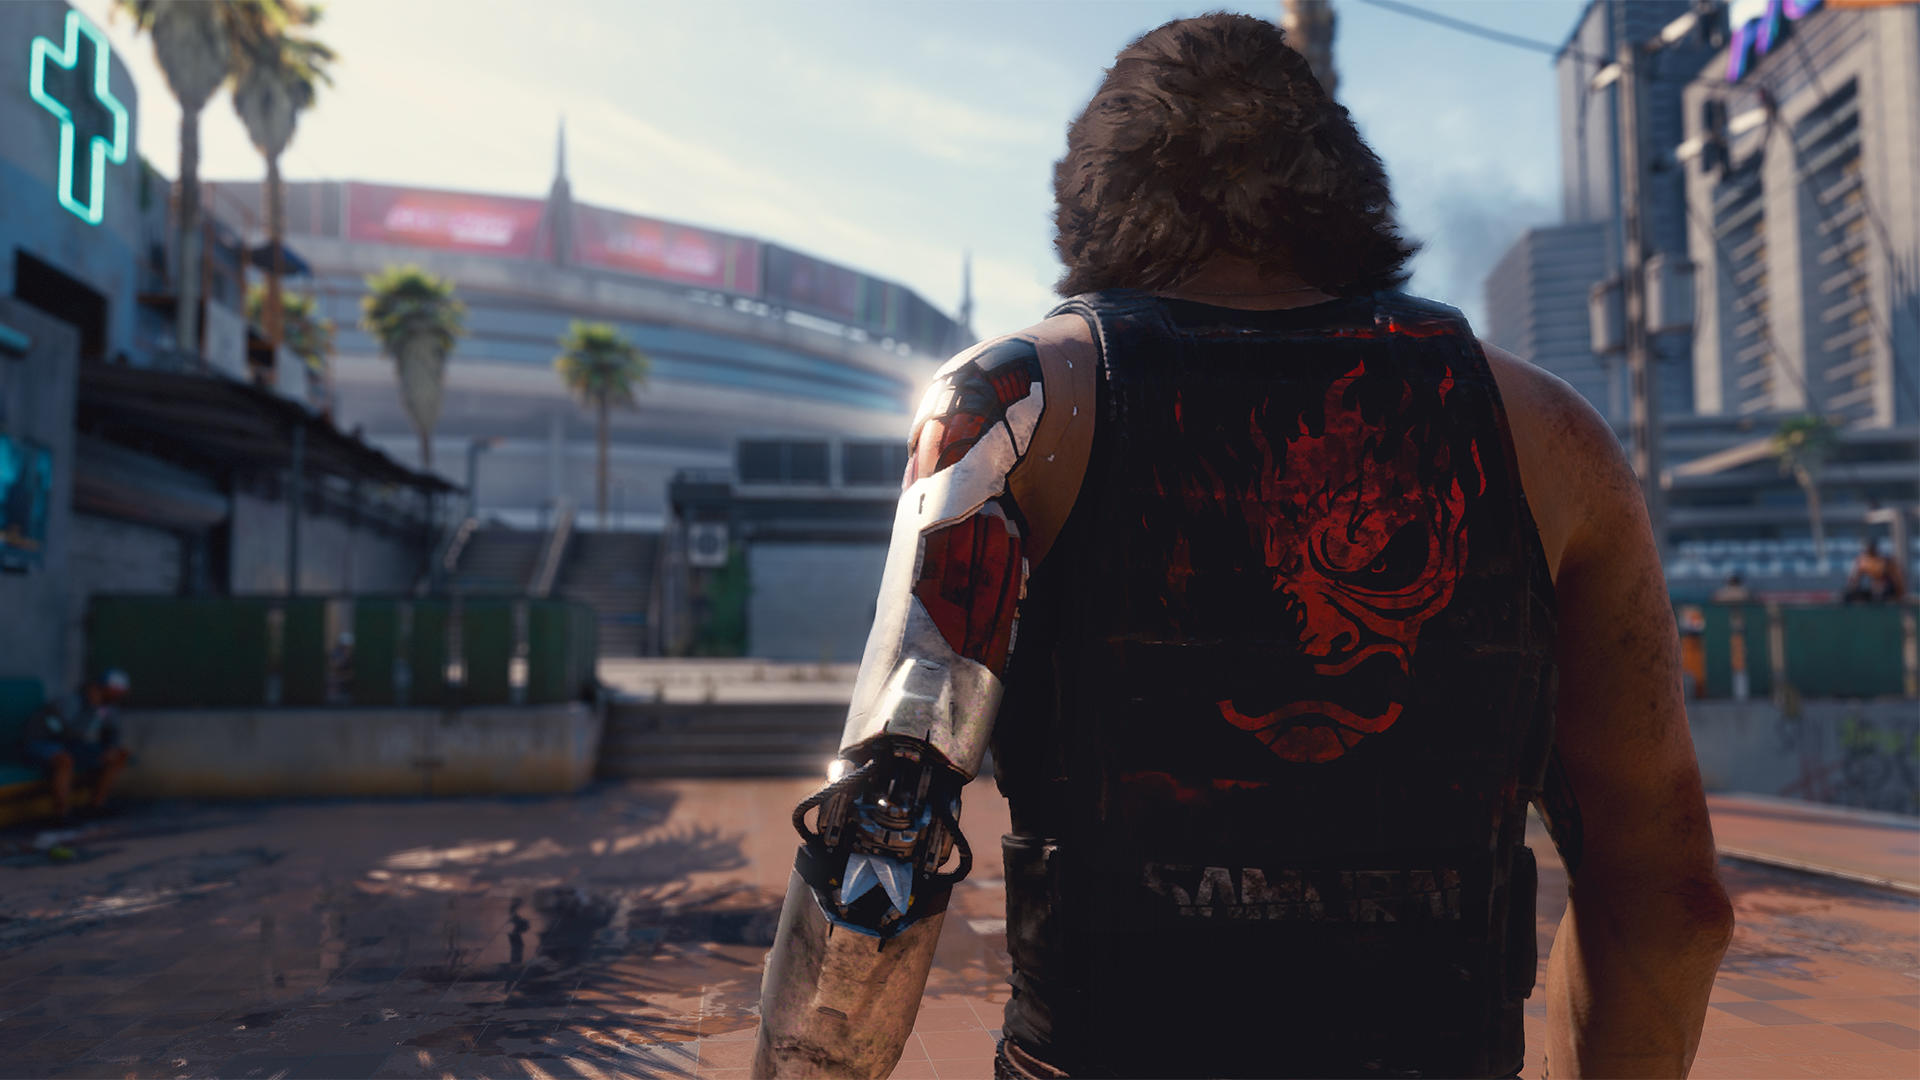 A look at Johnny Silverhand, Keanu Reeves' character in Cyberpunk 2077.